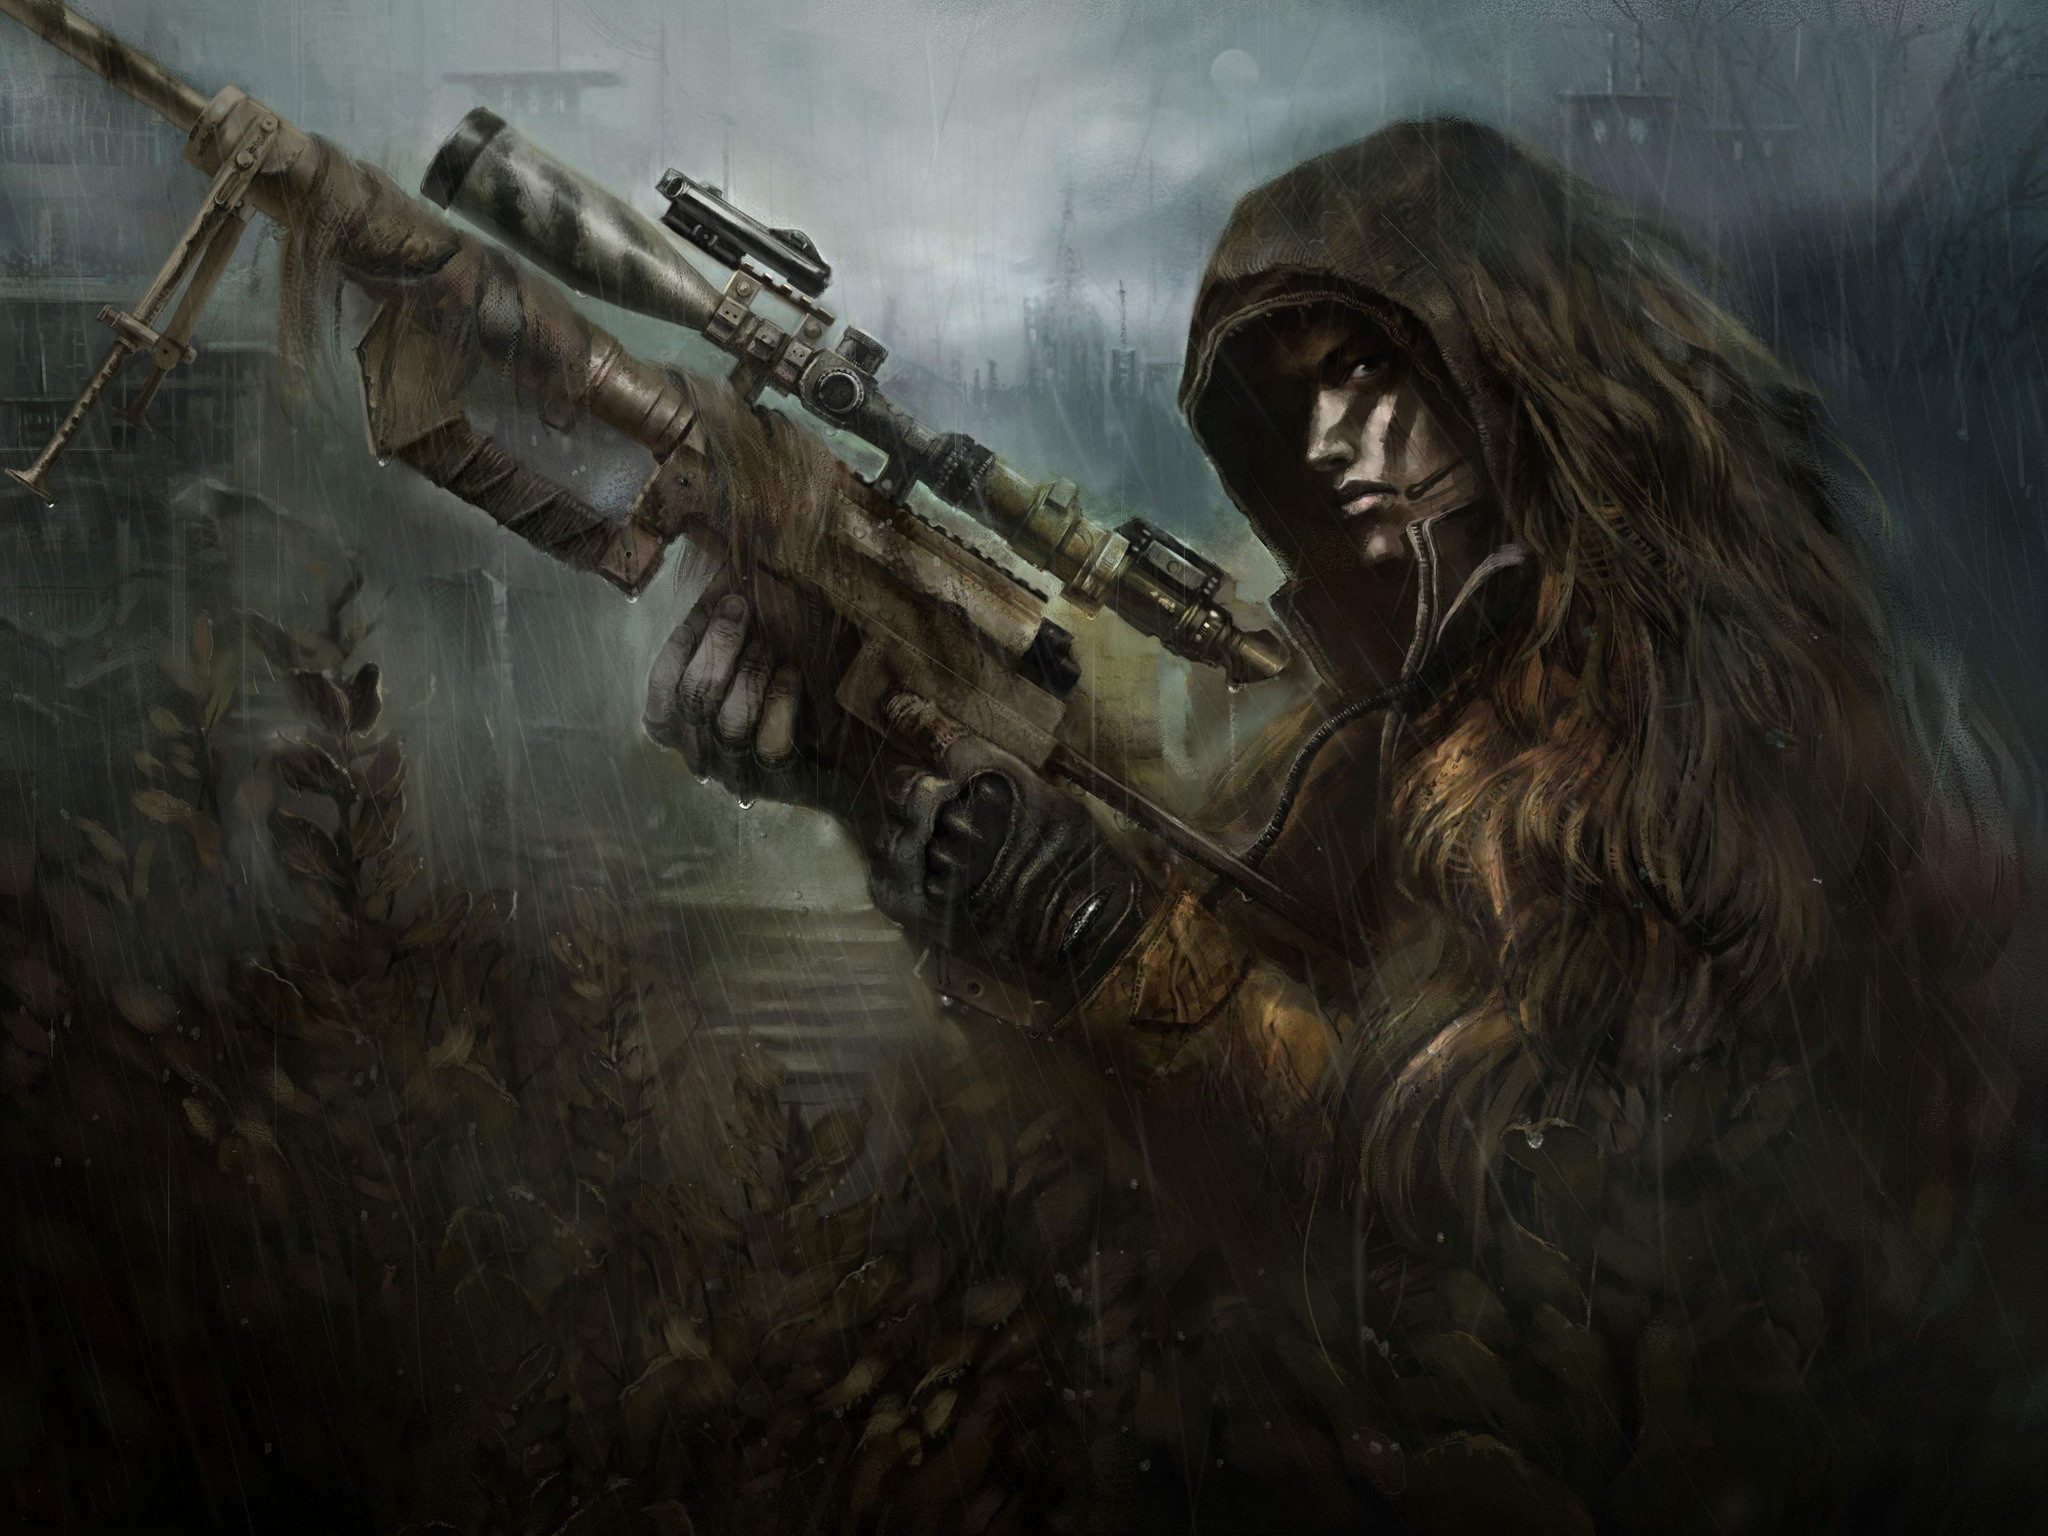 72 Ghillie Suit Wallpapers On Wallpaperplay: Ghillie Suit Wallpaper (85+ Images